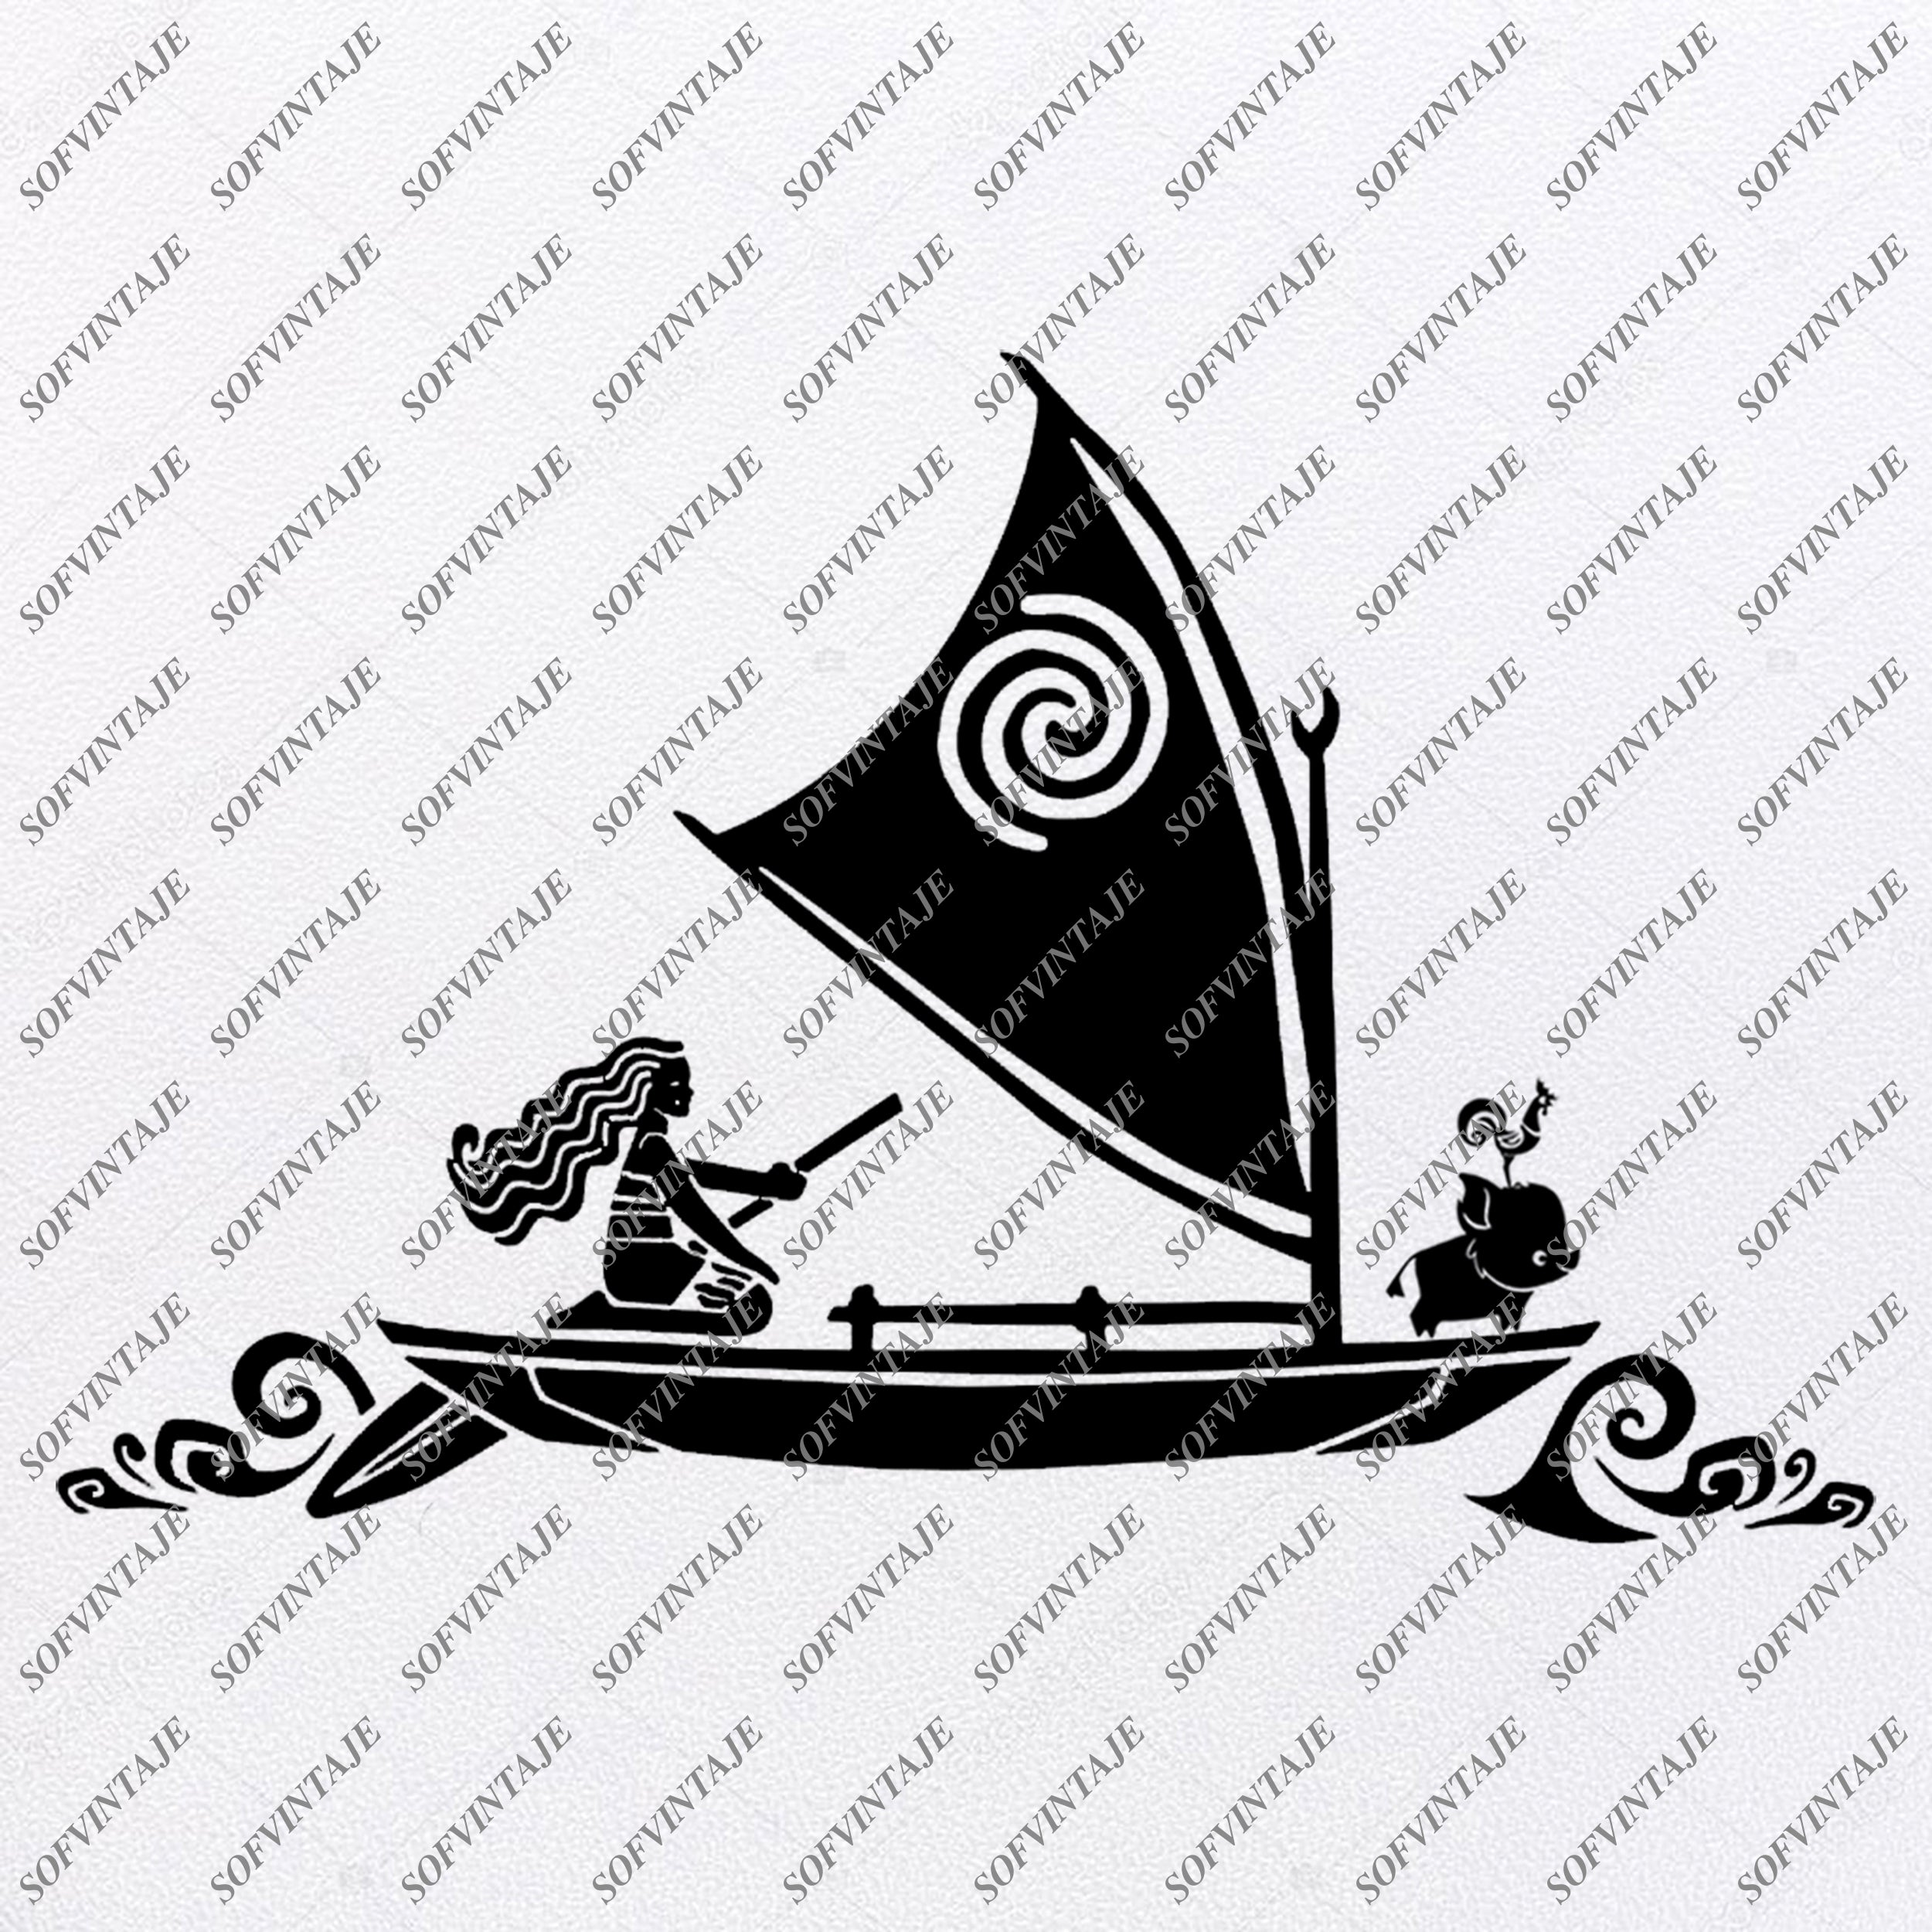 Moana Svg Files Disney Moana Svg Design Princess Moana Png Moana Sofvintaje